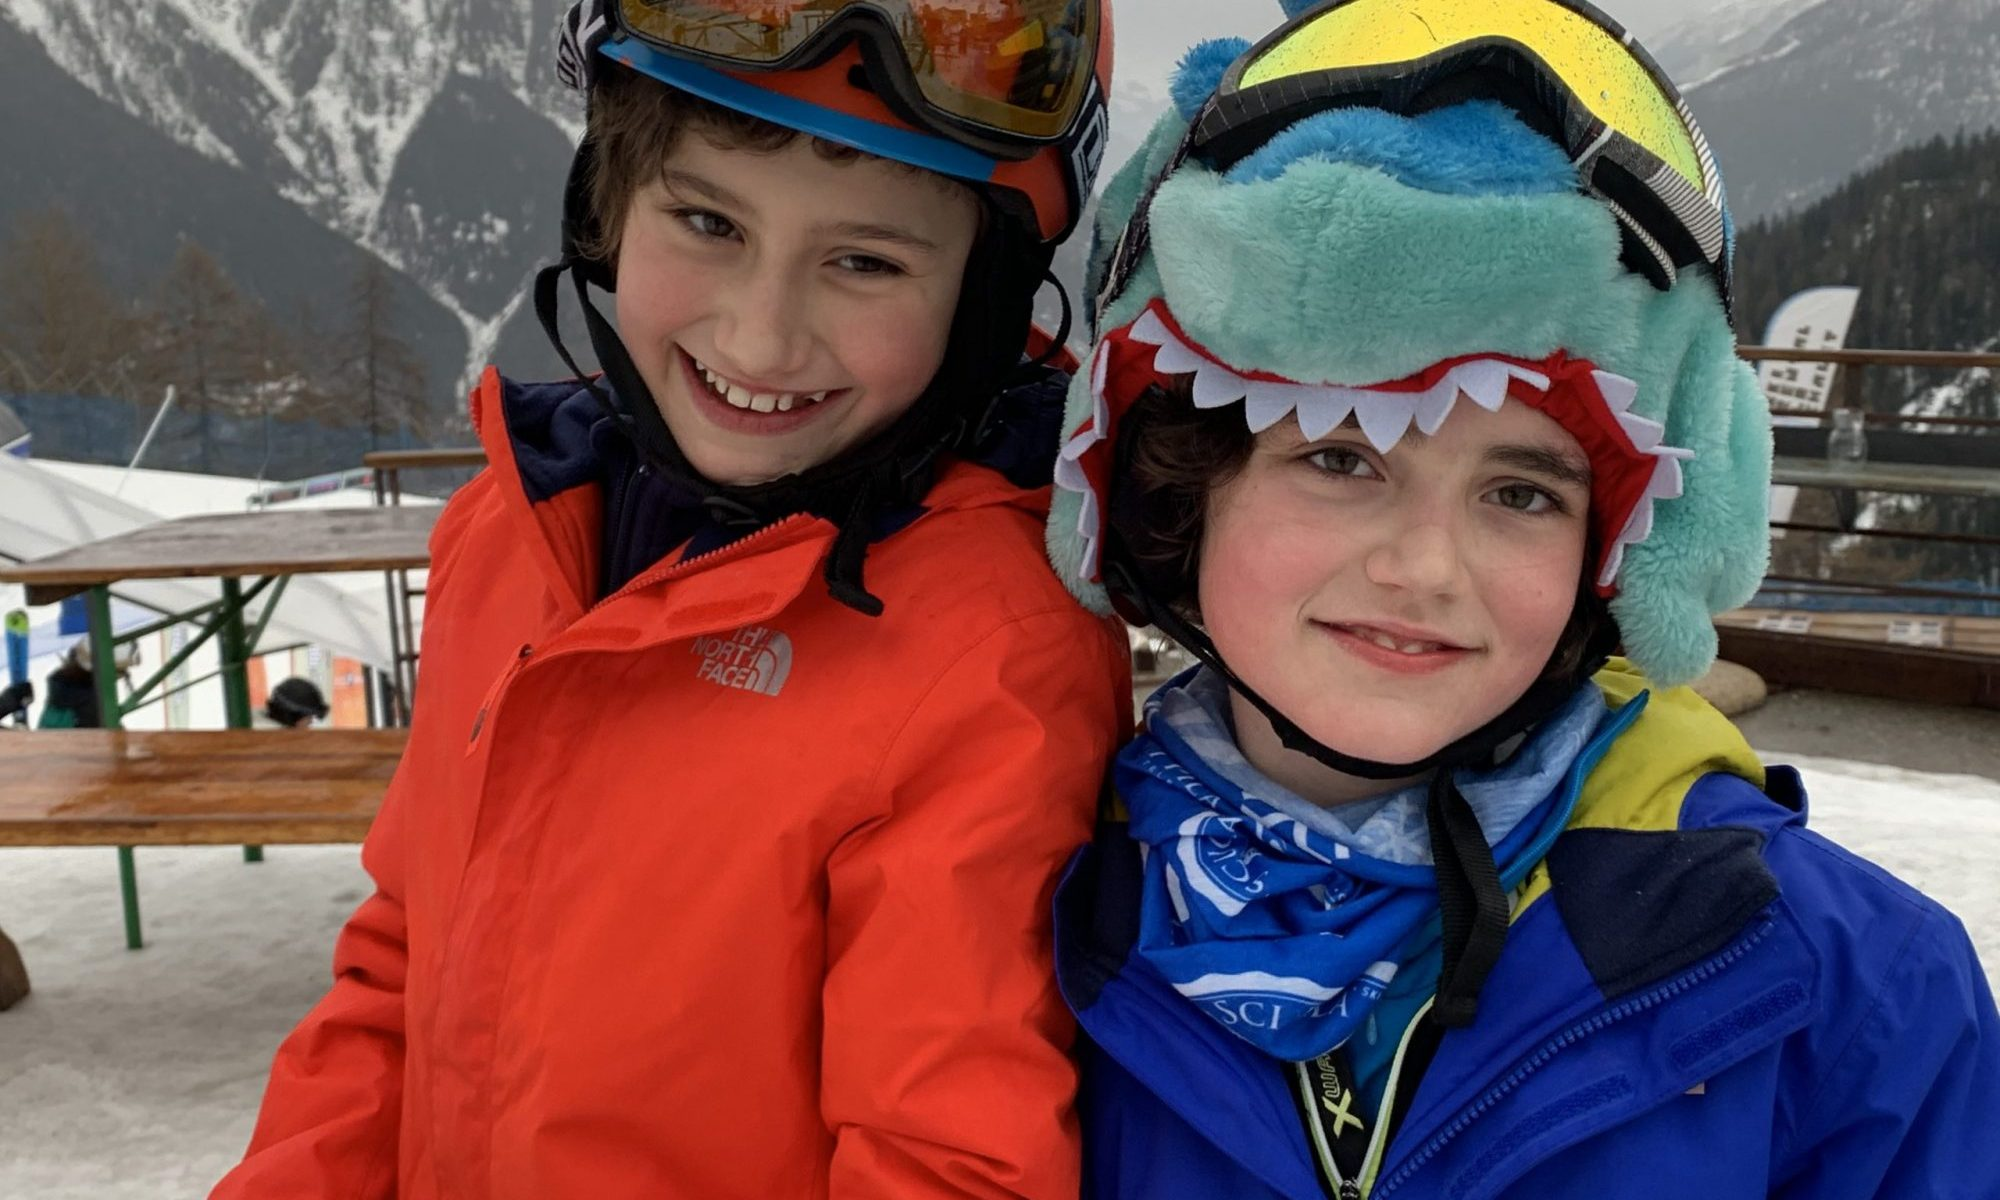 Our half term ski-safari holiday based in the Valdigne of Aosta Valley- Courmayeur, Pila and La Thuile. The boys happy after a great ski day.